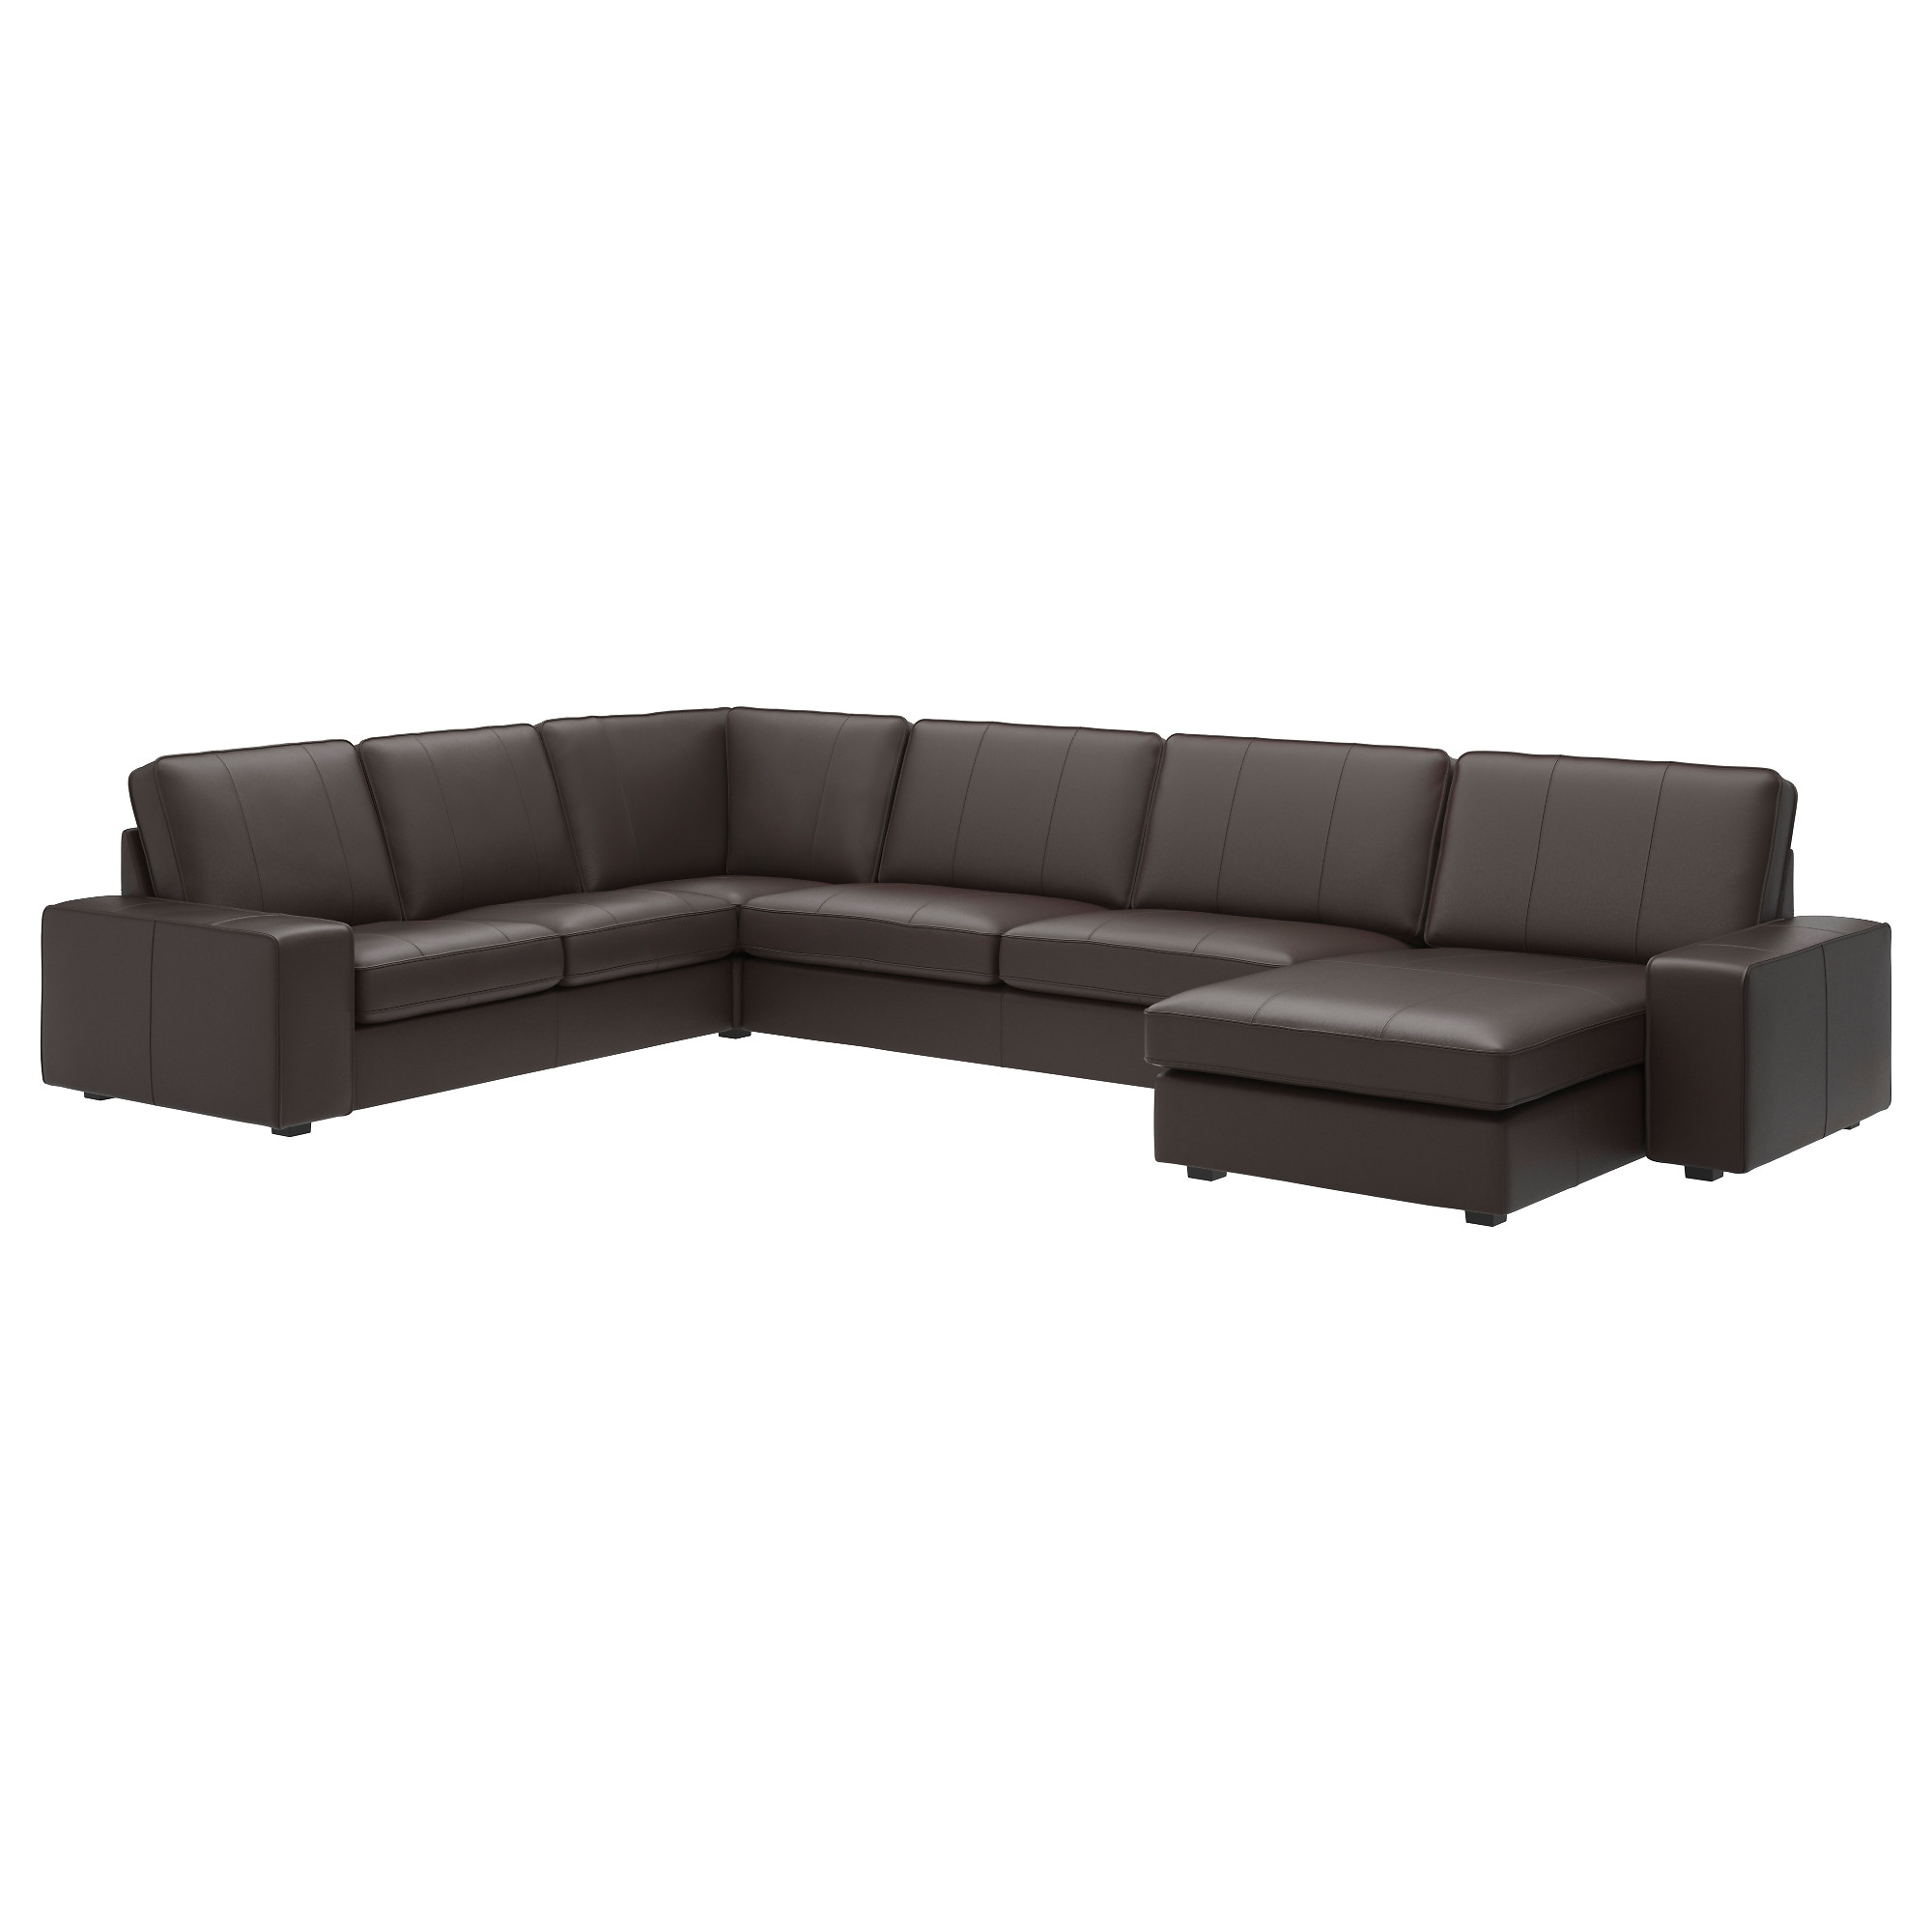 KIVIK sectional 5-seat Grann with chaise Bomstad Grann/Bomstad dark  sc 1 st  Ikea : leather chaise couch - Sectionals, Sofas & Couches